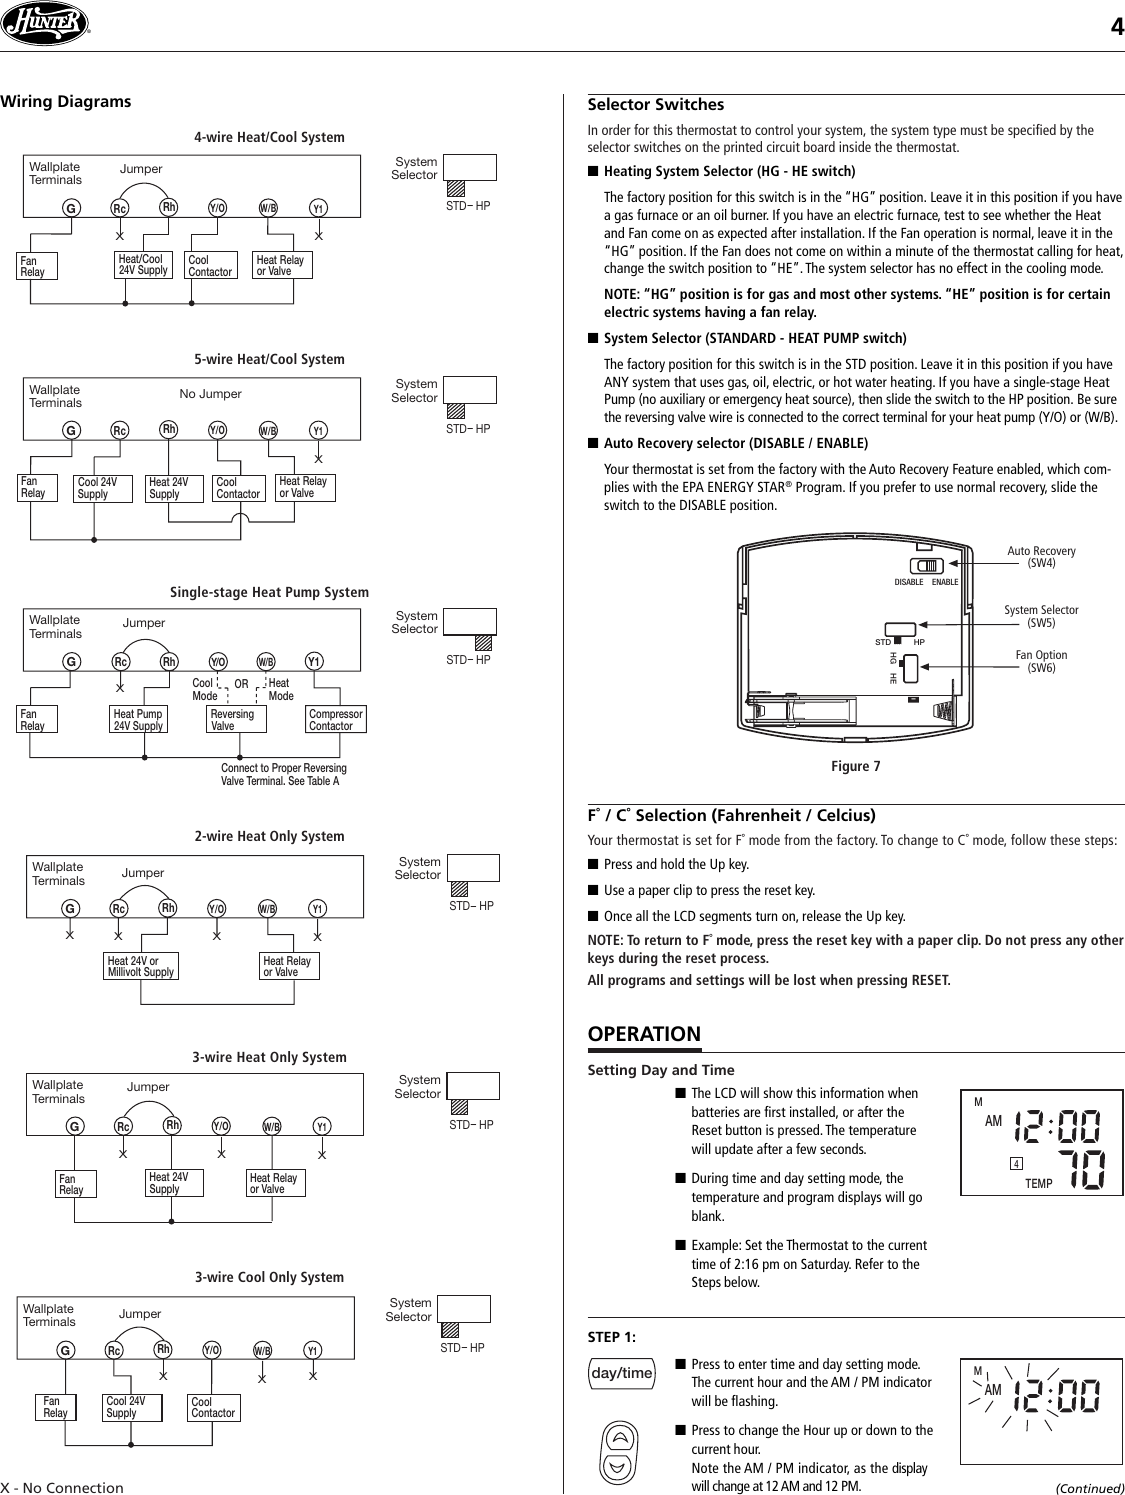 Hunter Thermostat 44260 Wiring Diagram 2wire Schematic Diagrams Fan Users Manual 41640 Web Pmd Honeywell Wi Fi